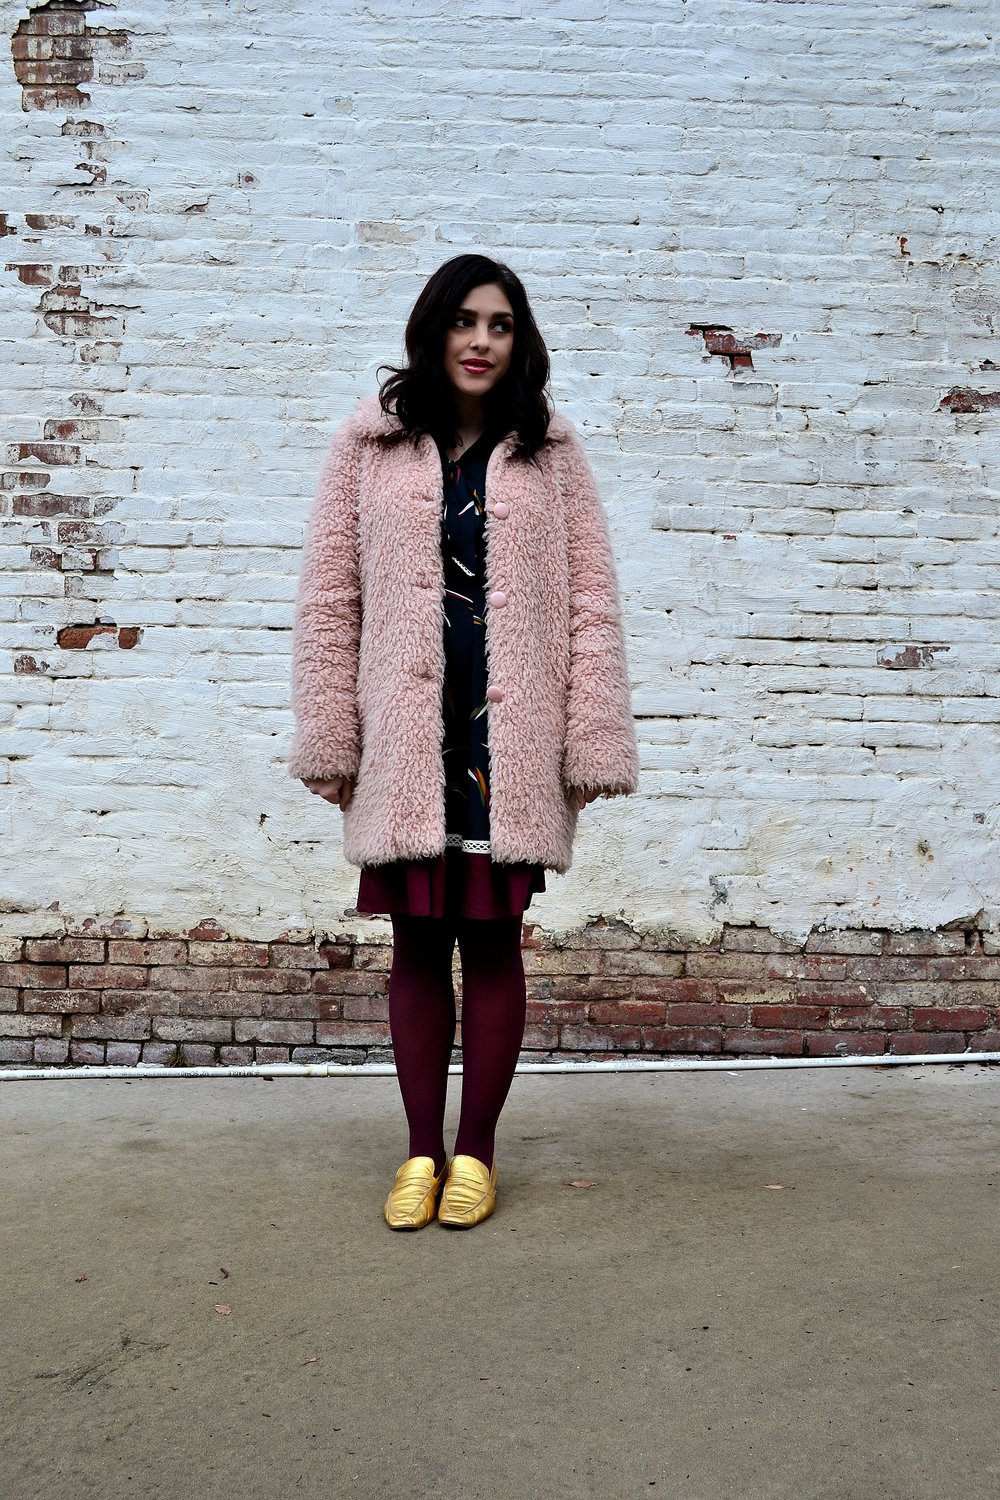 teddy bear coat- Warehouse (bought from  Keiko Lynn 's closet sale),  dress- Miss Patina available at ModCloth , tights- Express,  loafers- c/o LF/LIFE